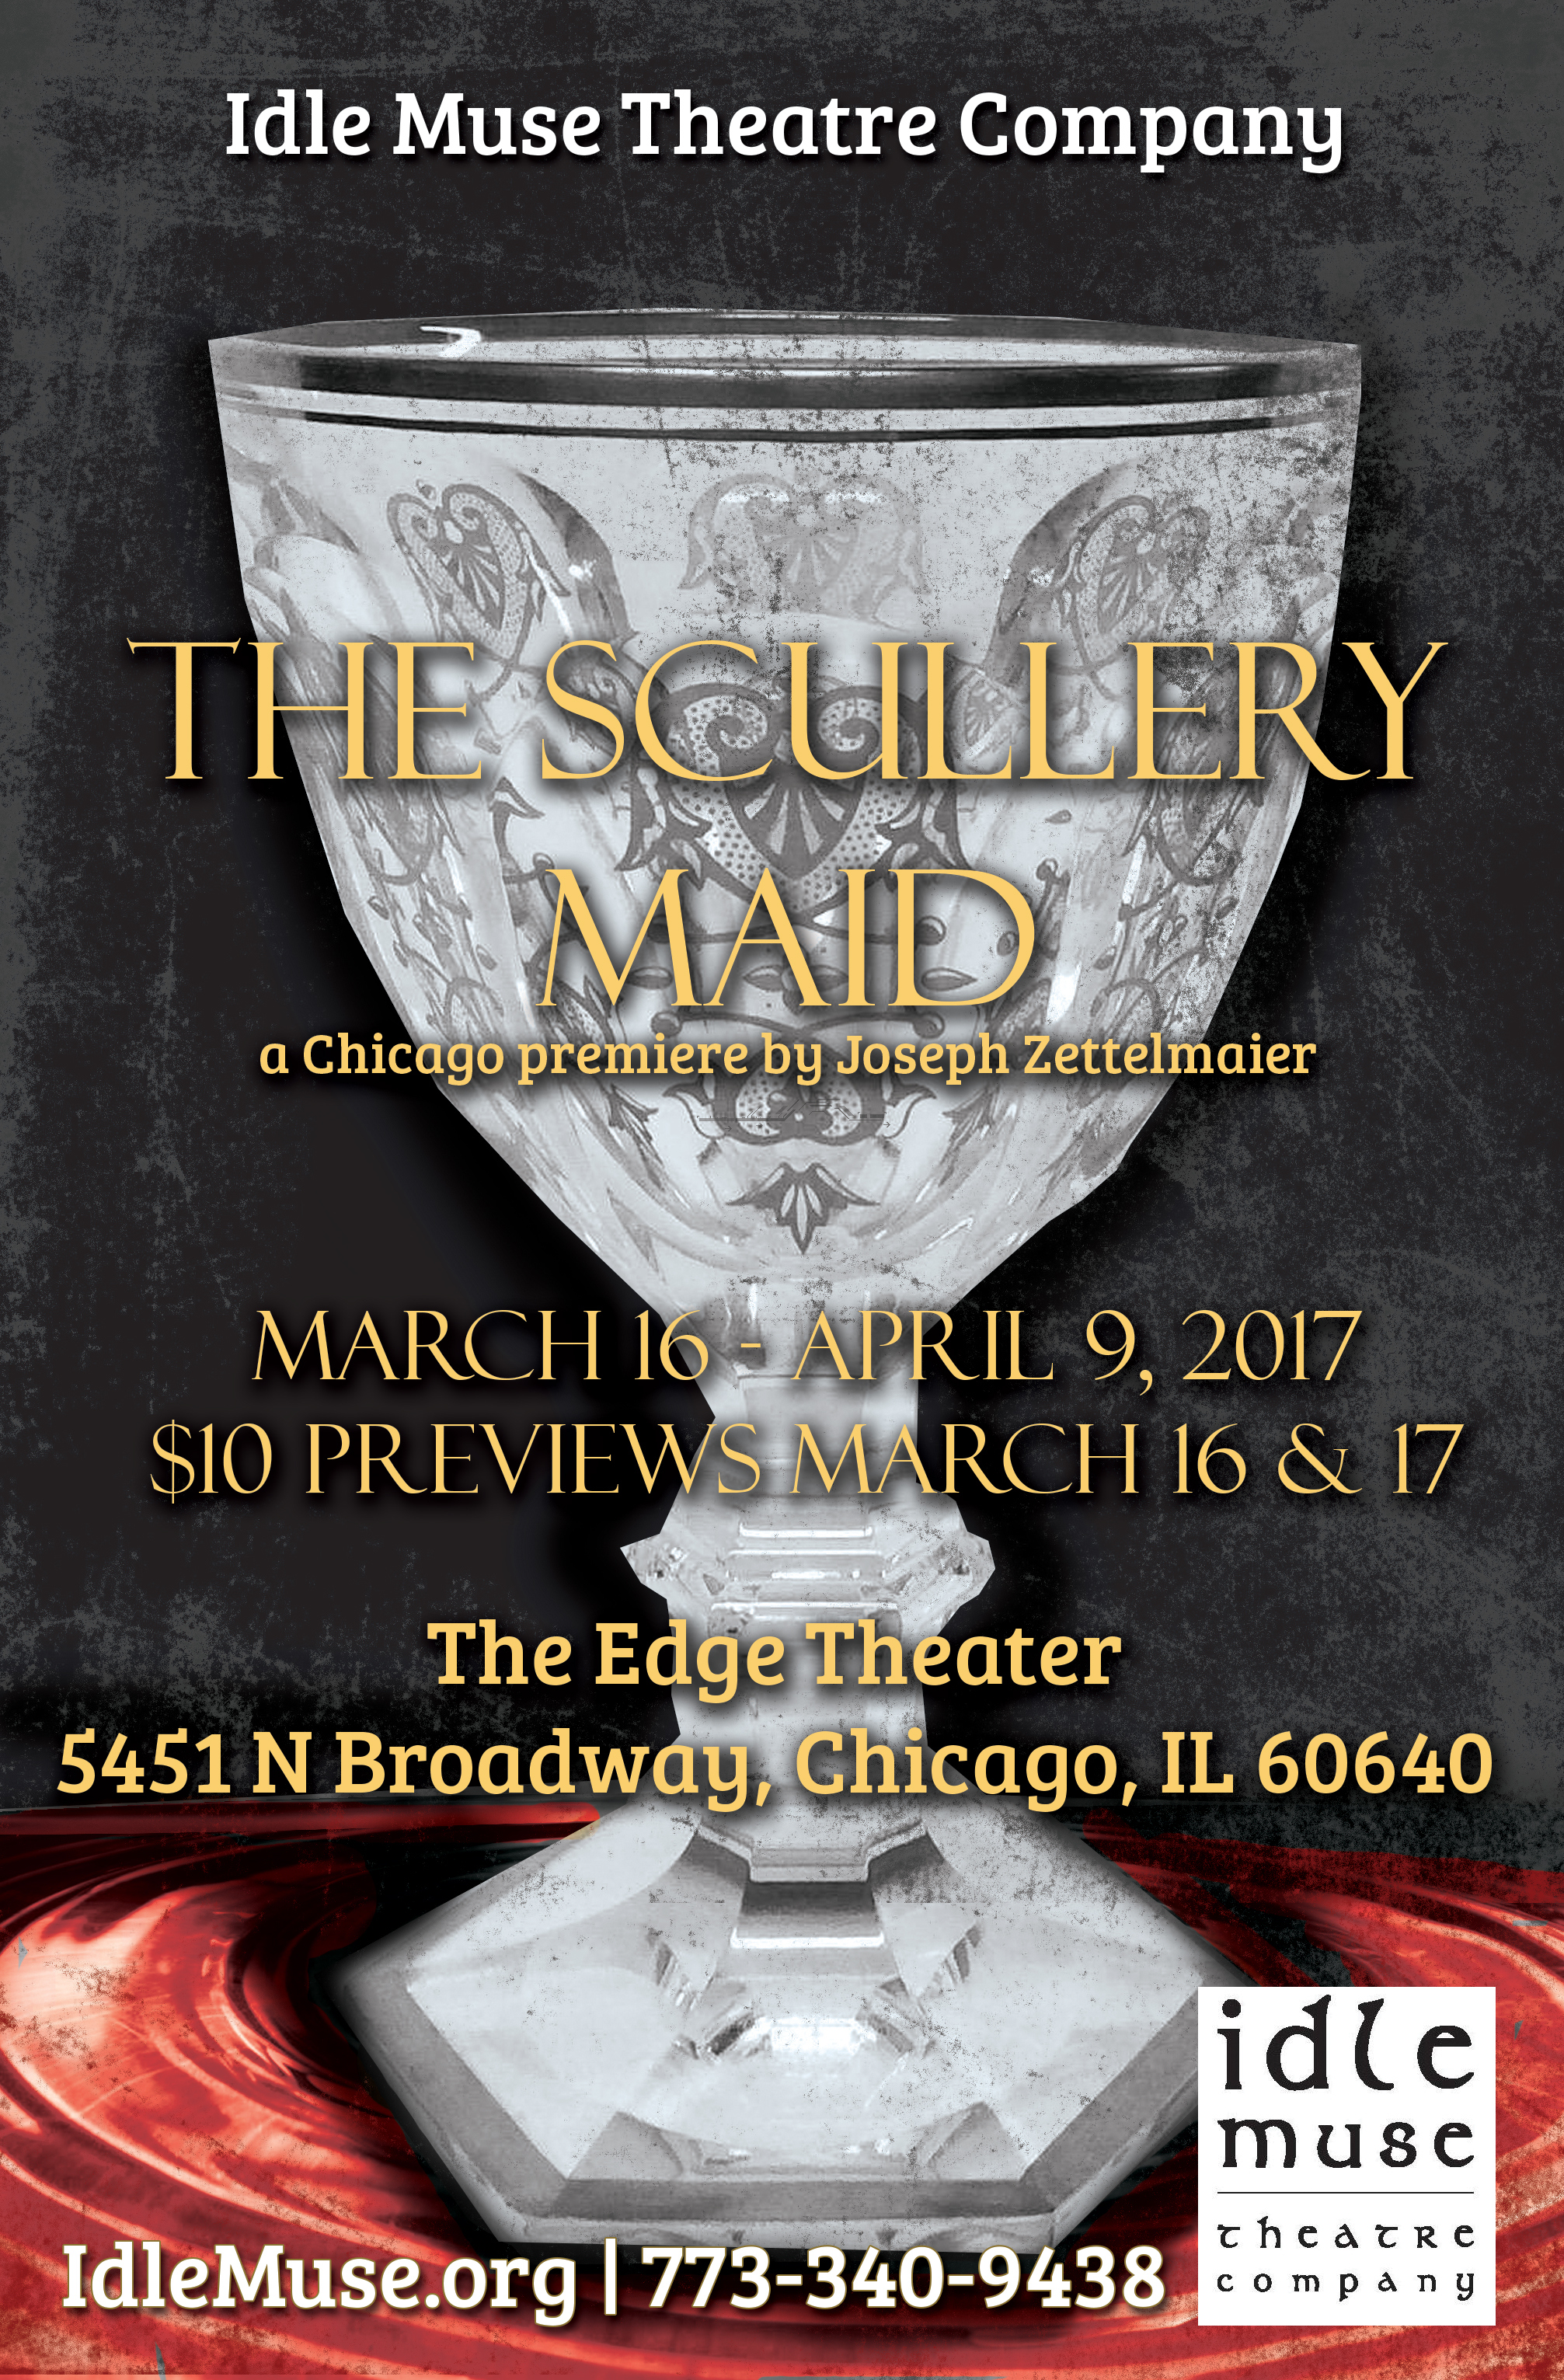 scullery-poster1.jpg